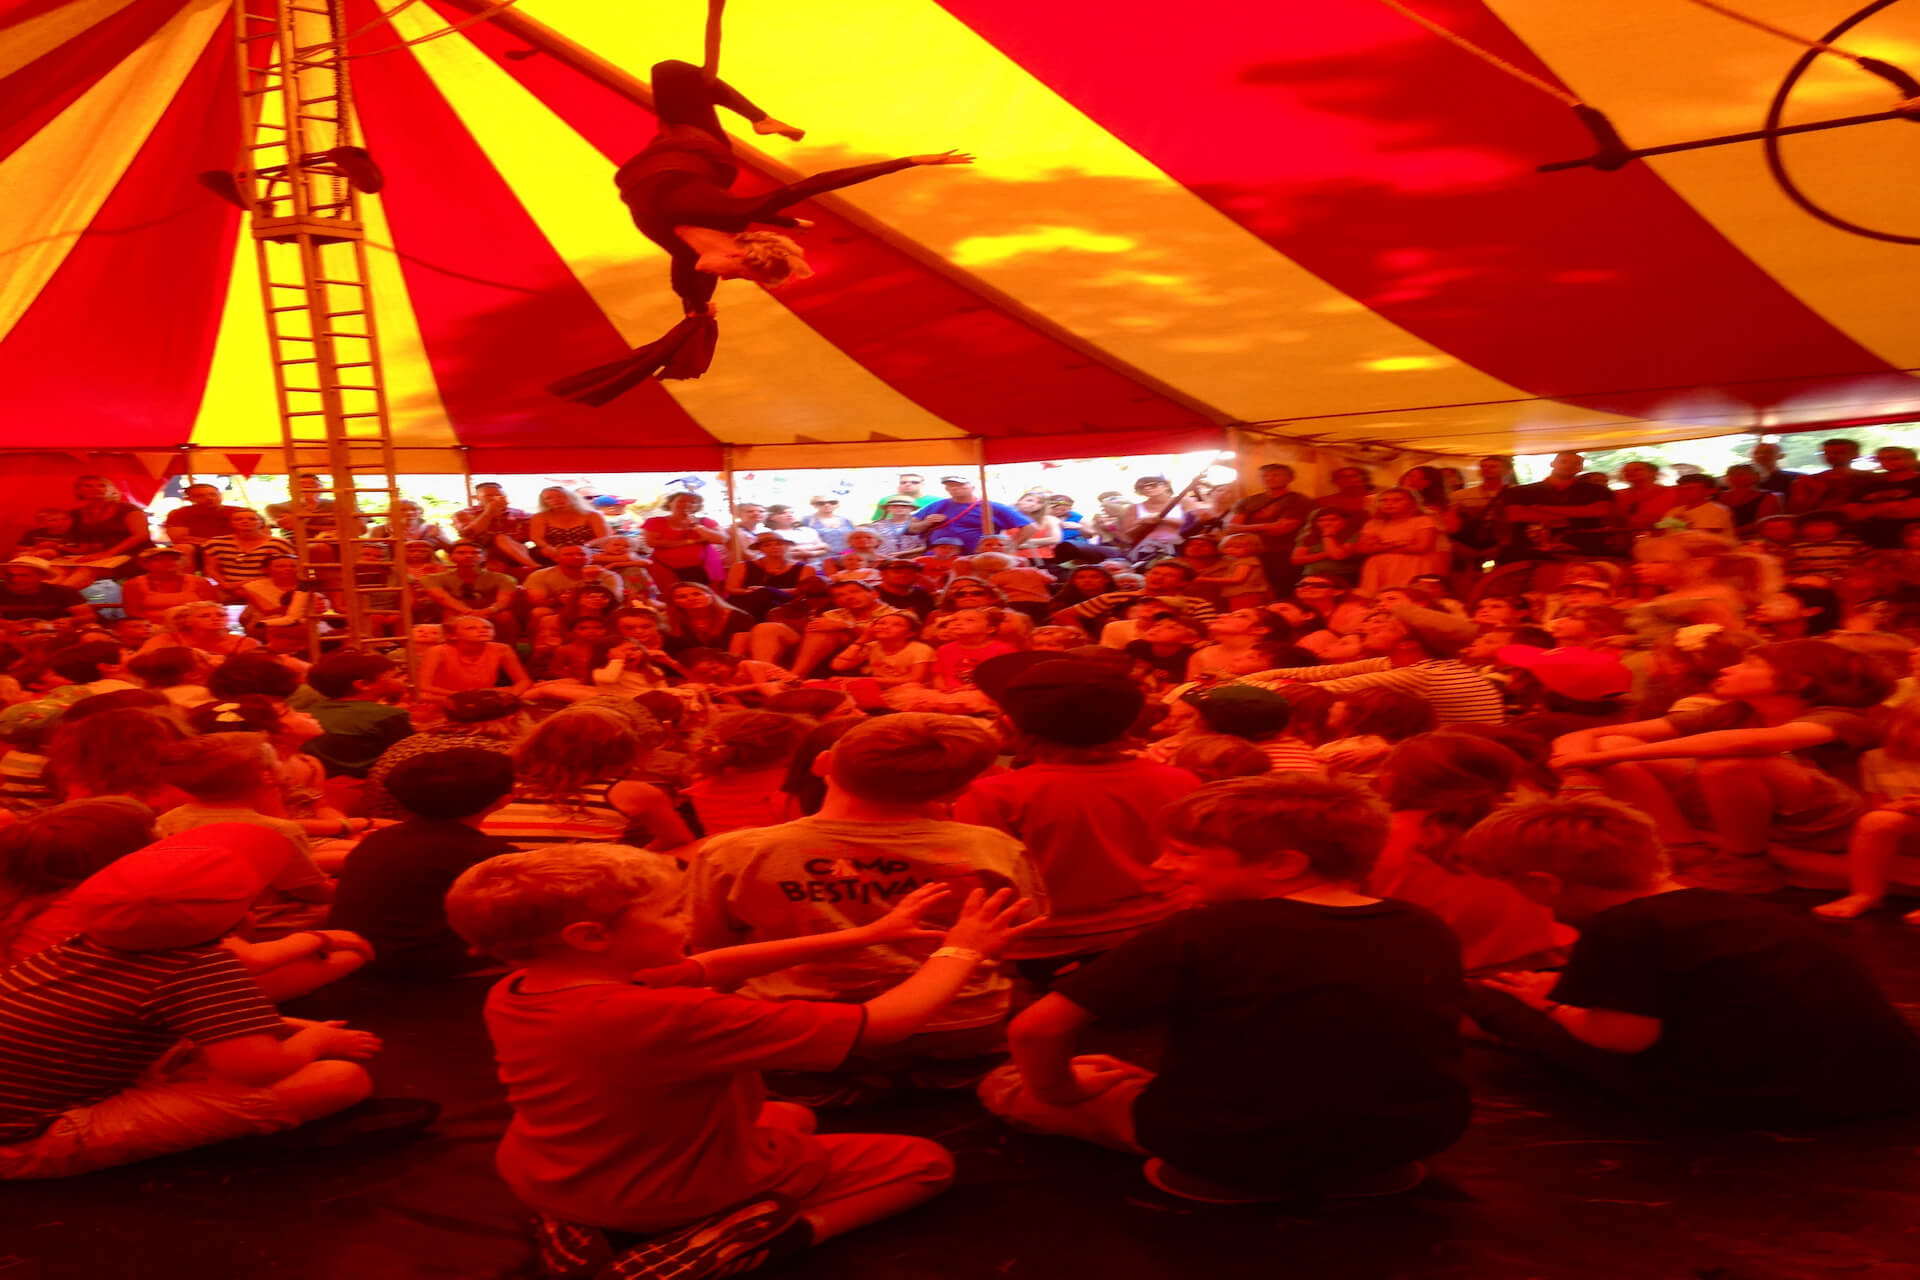 Packed show tent at Camp Bestival Dorset